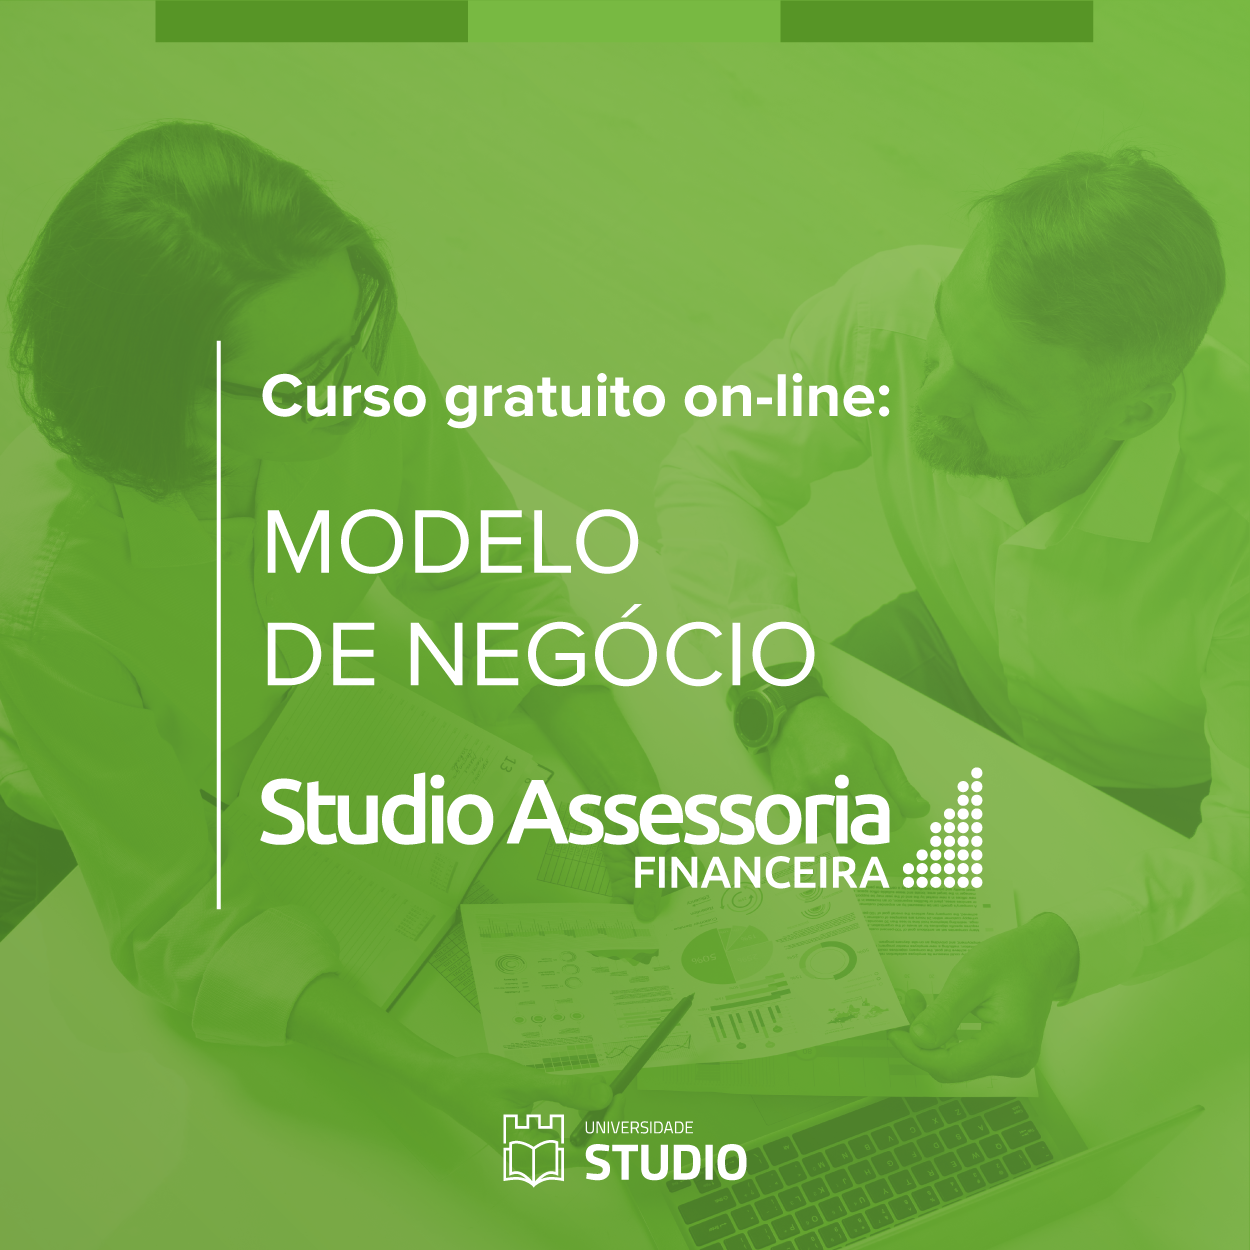 Universidade curso assessoriafinanceira capa